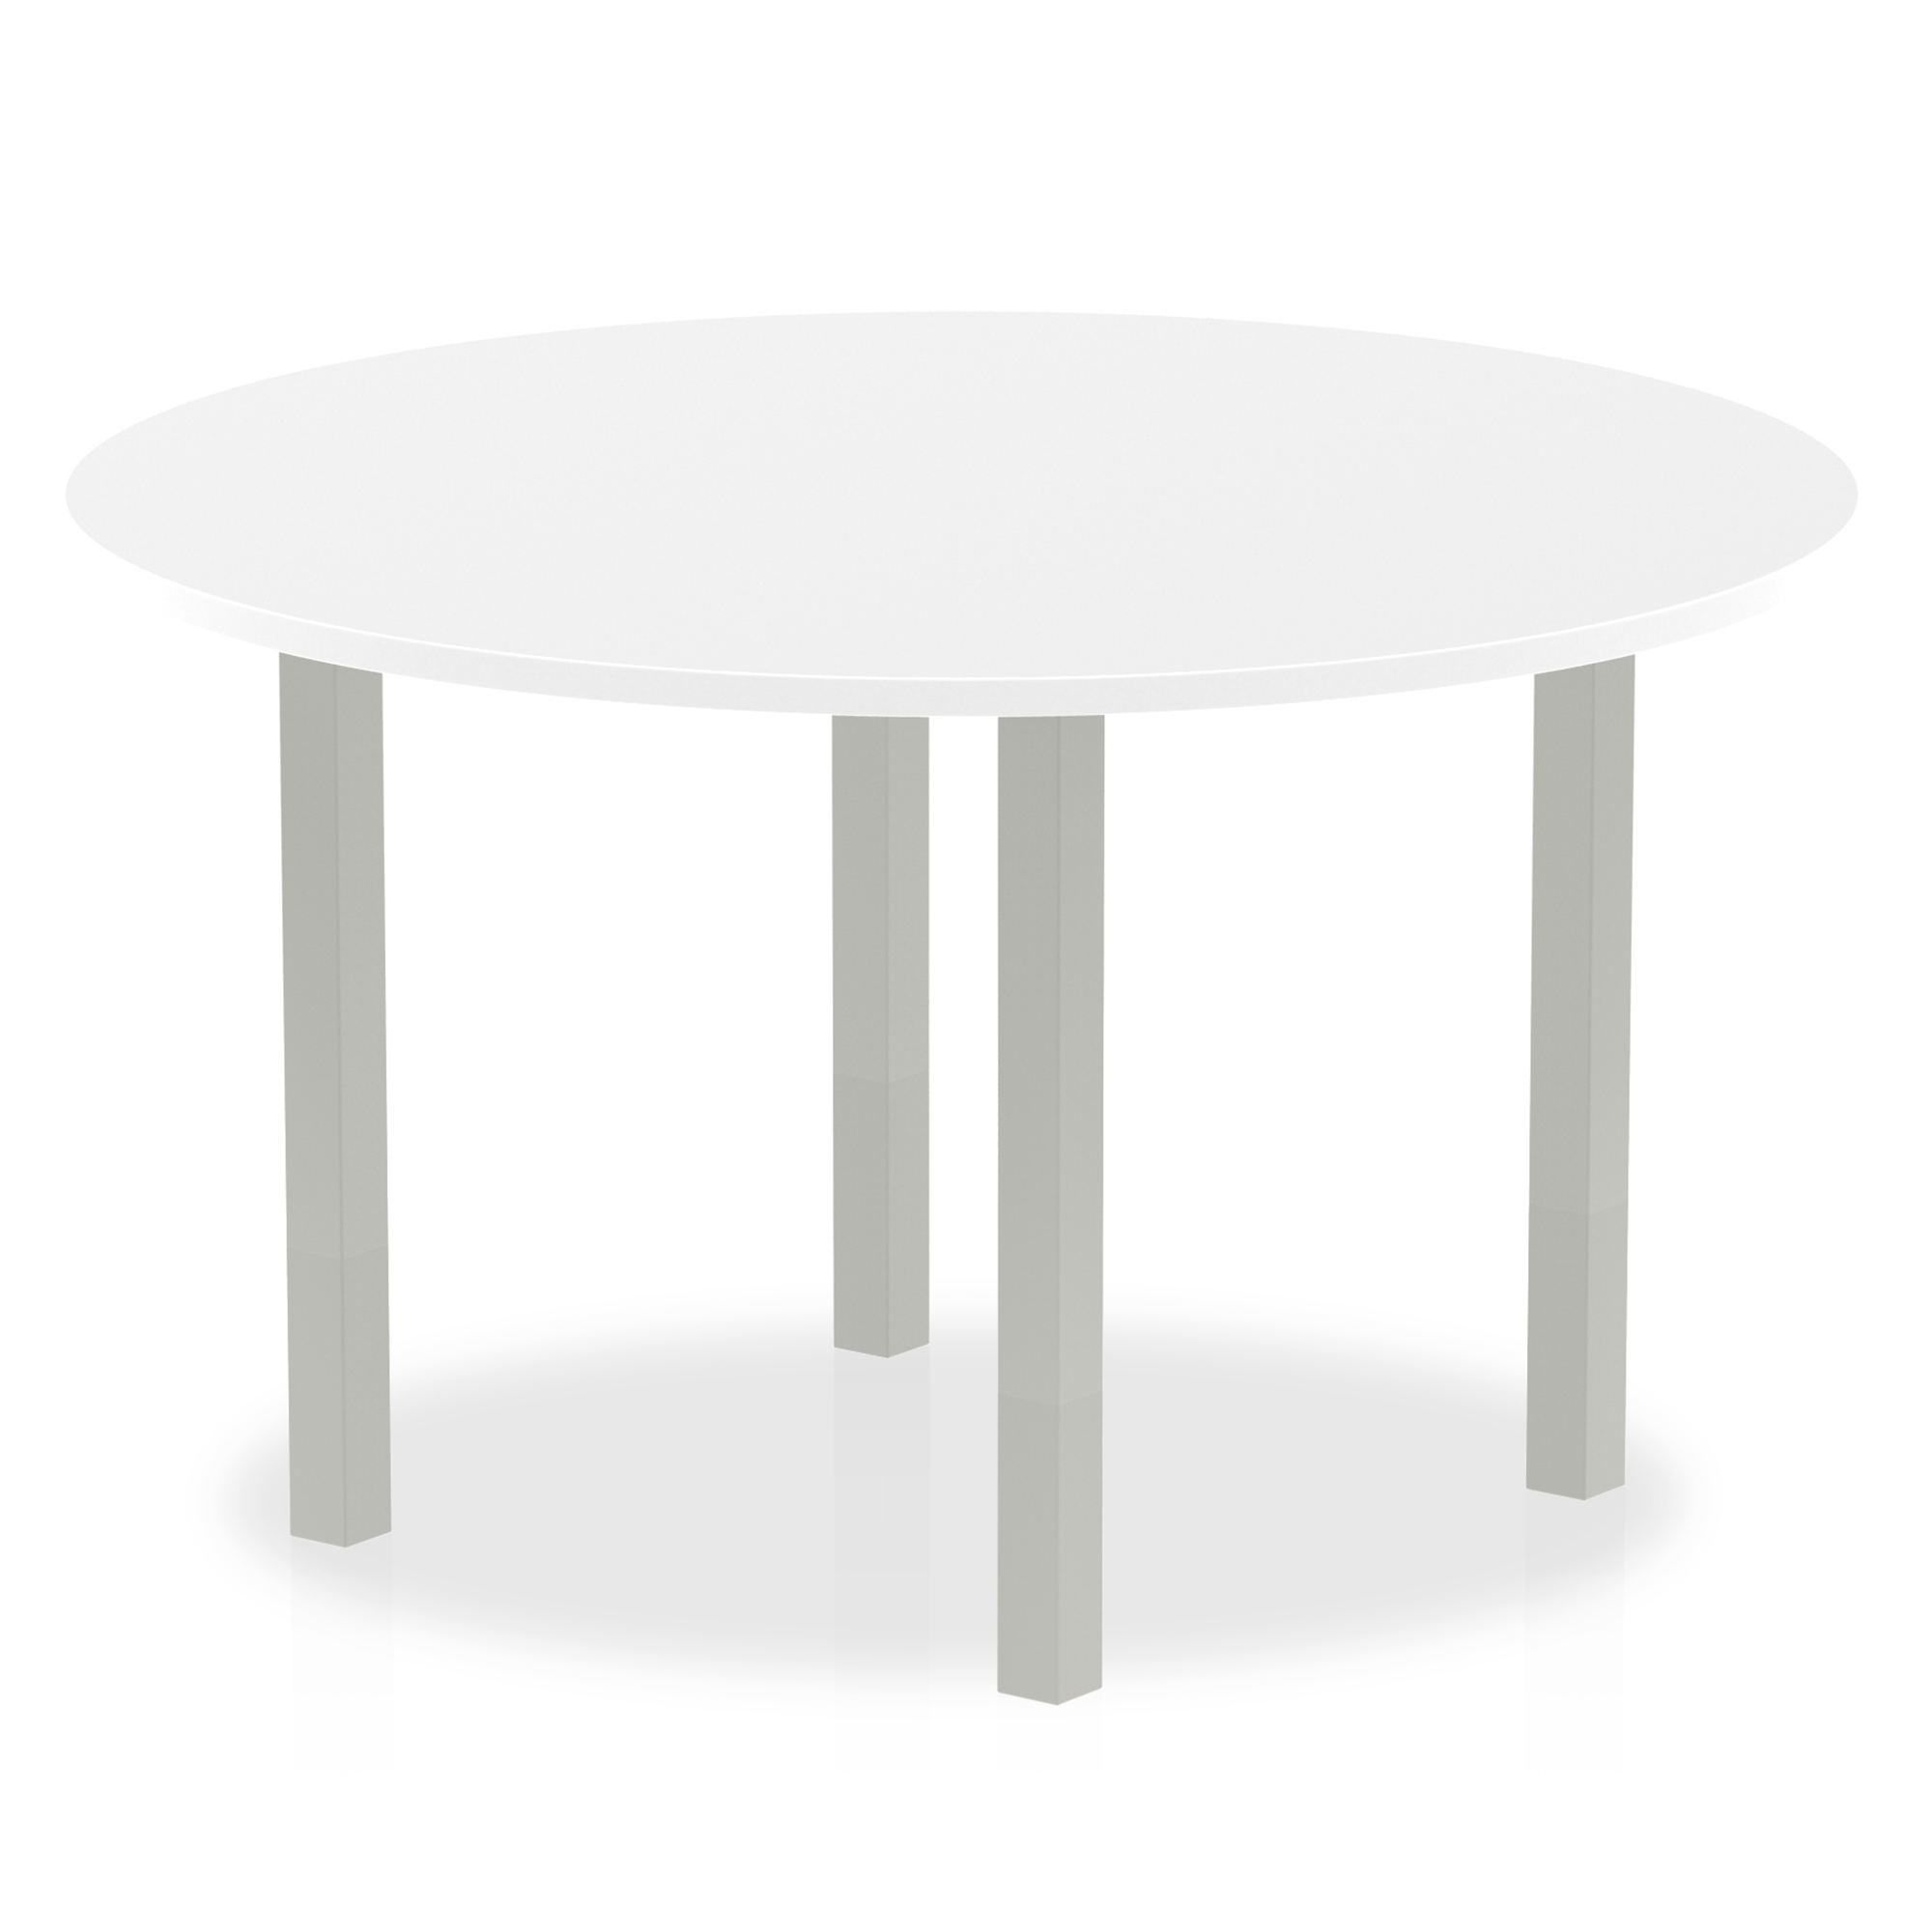 Trexus Meeting Table Round 1200mm White Ref I000200